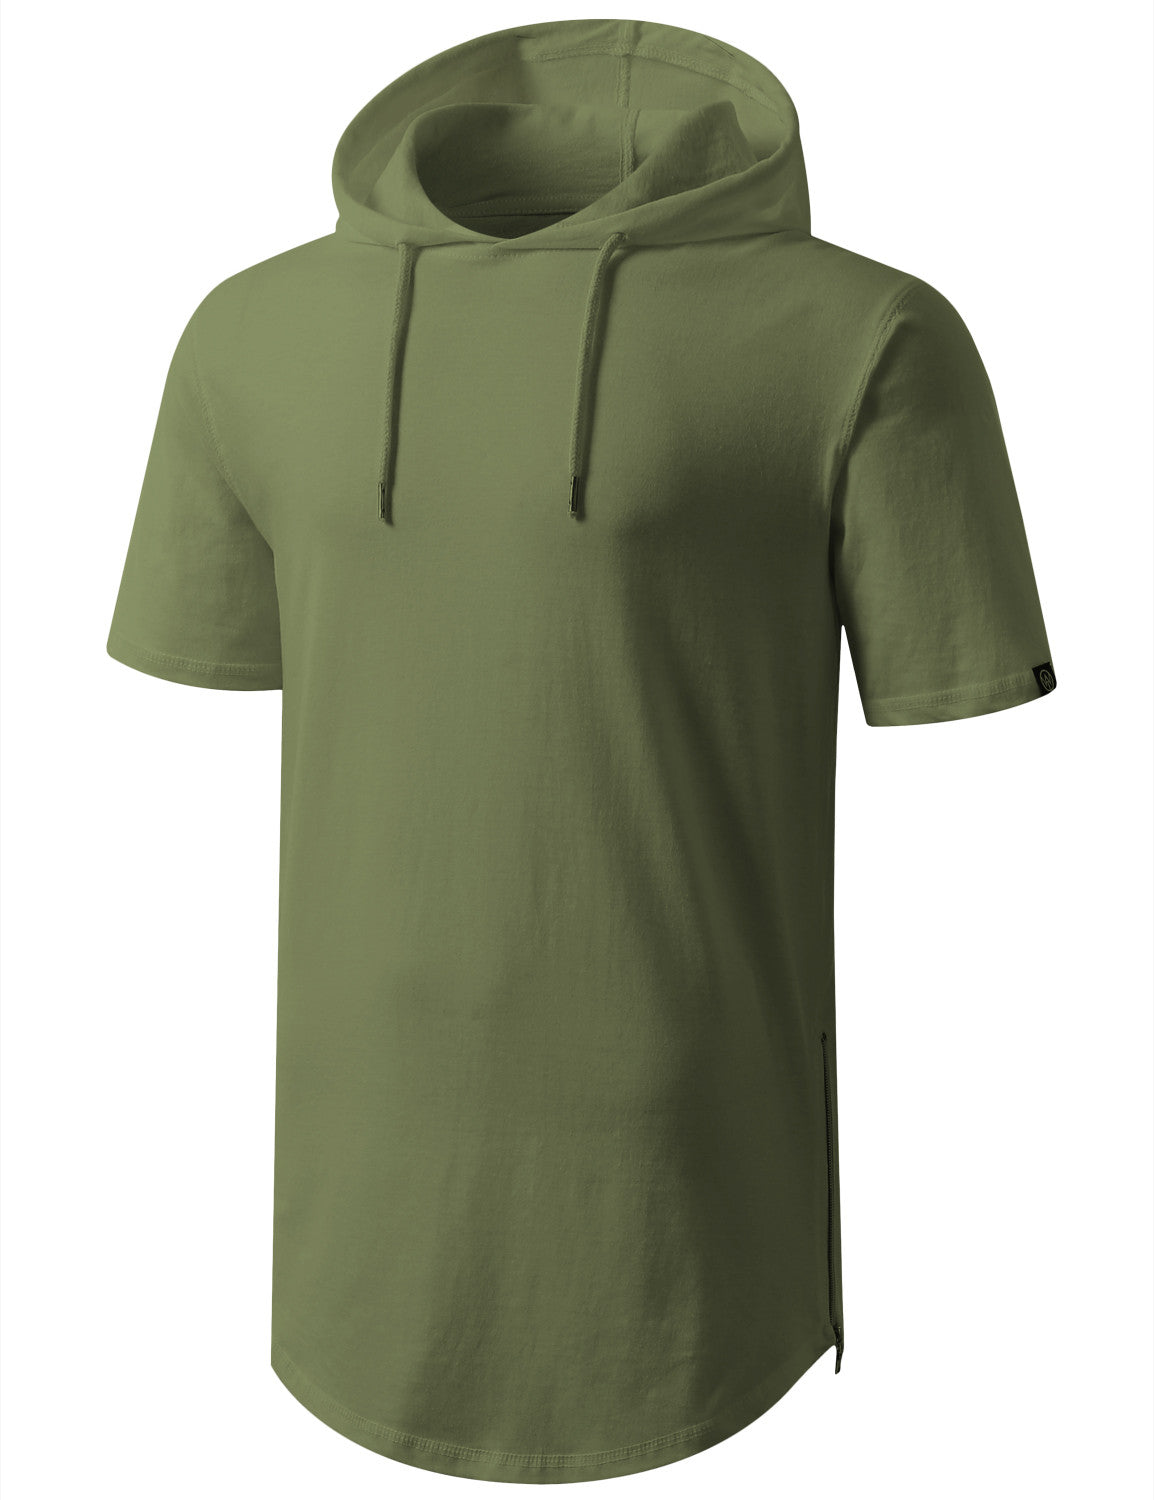 LTOLIVE Longline Short Sleeve Hoodie with Side Zipper